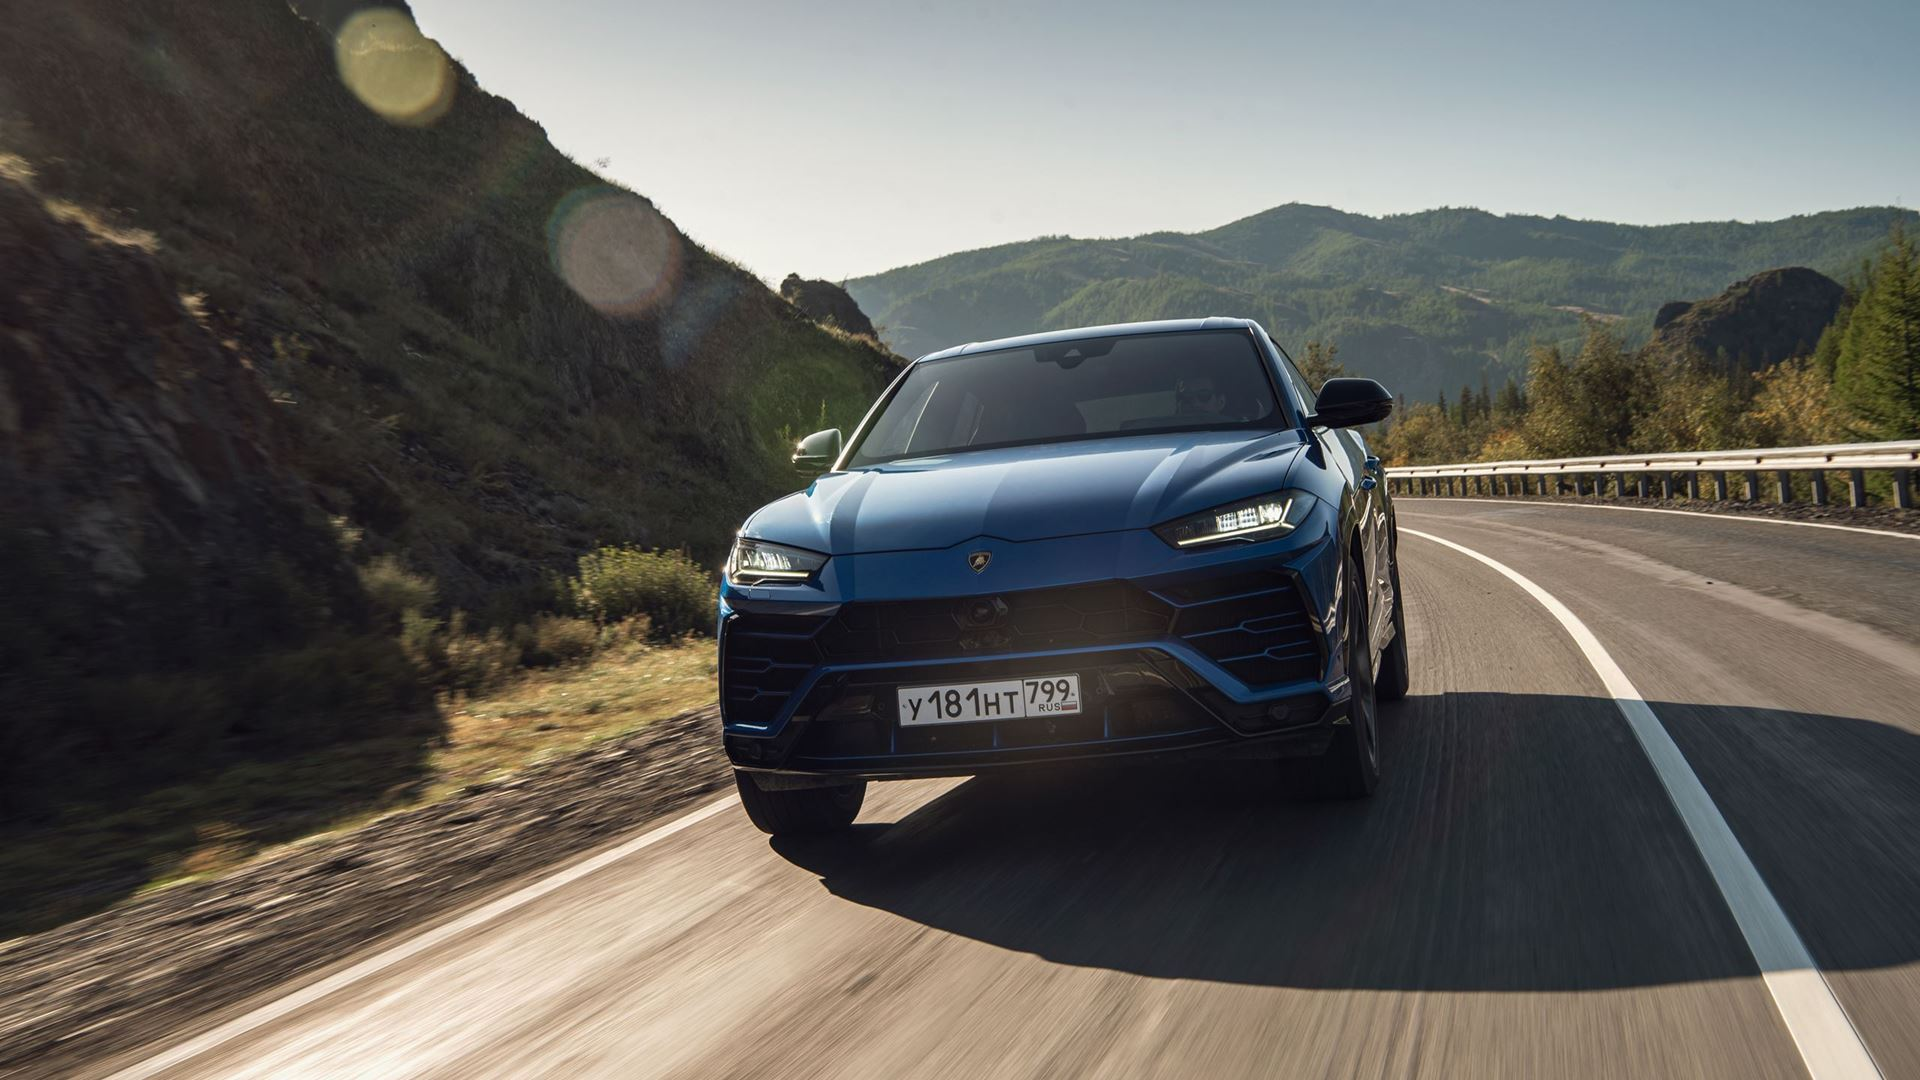 Lamborghini Urus: 6 driving modes to enjoy the Super SUV in 6 different ways - Image 4